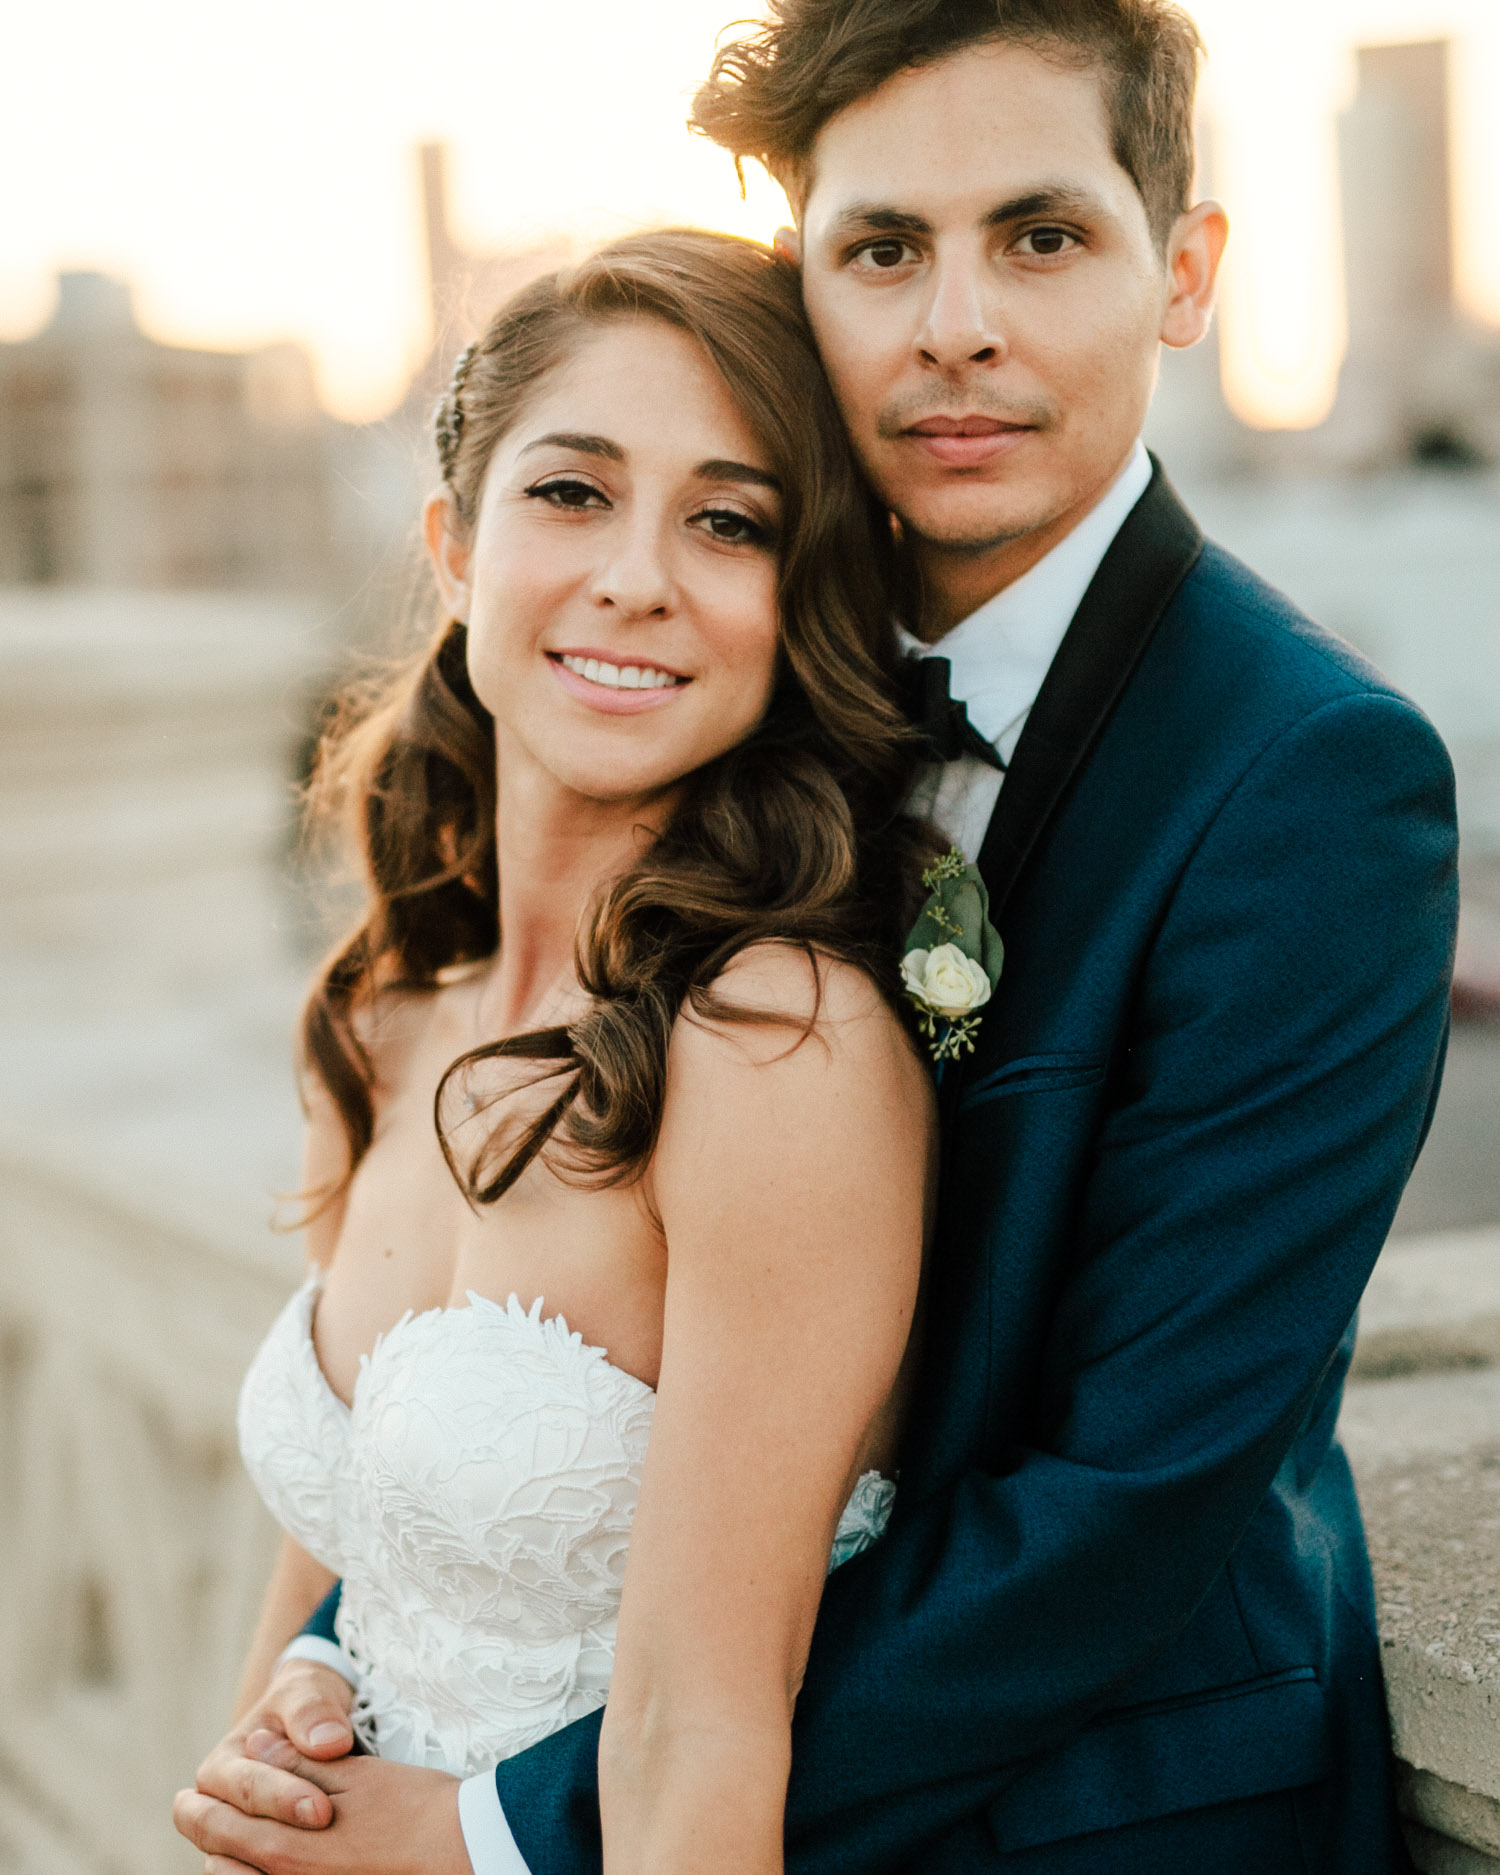 Los Angeles Wedding Photographer, Ace Hotel, Millwick Wedding - The Gathering Season x weareleoandkat 096.JPG